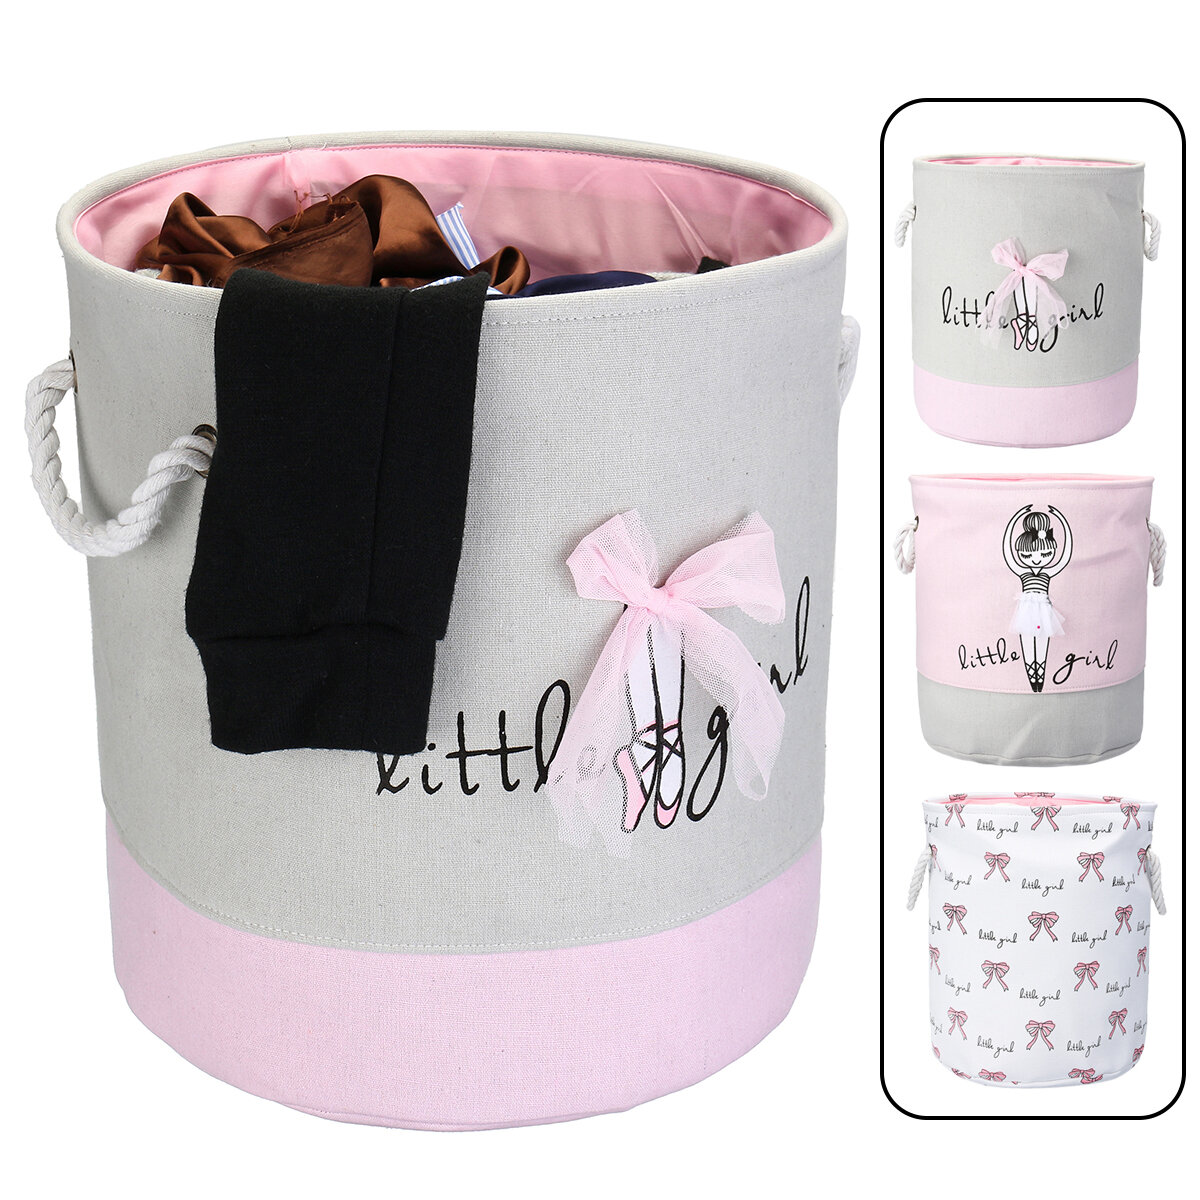 Cute Laundry Hamper Foldable Kids Toy Clothes Storage Bag Printed Laundry Hamper Clothes Washing Baskets Laundry Basket